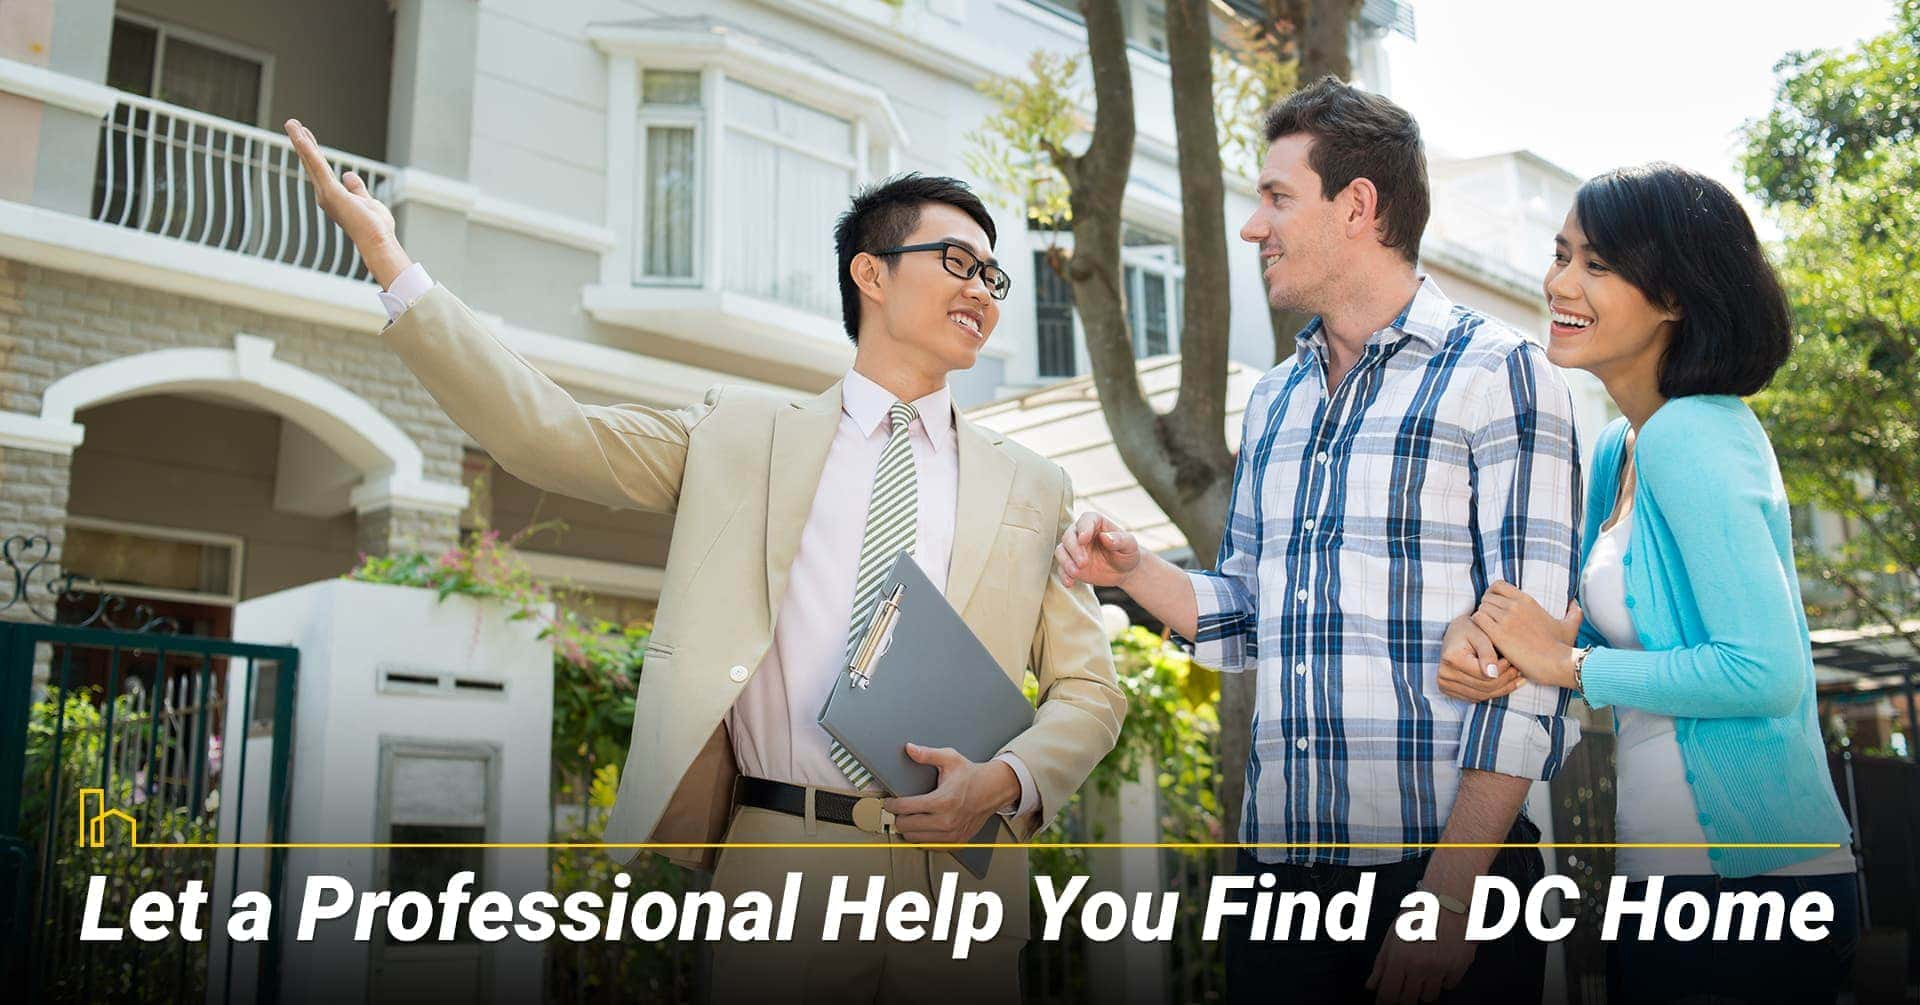 Let a Professional Help You Find a DC Home, get help from your realtor